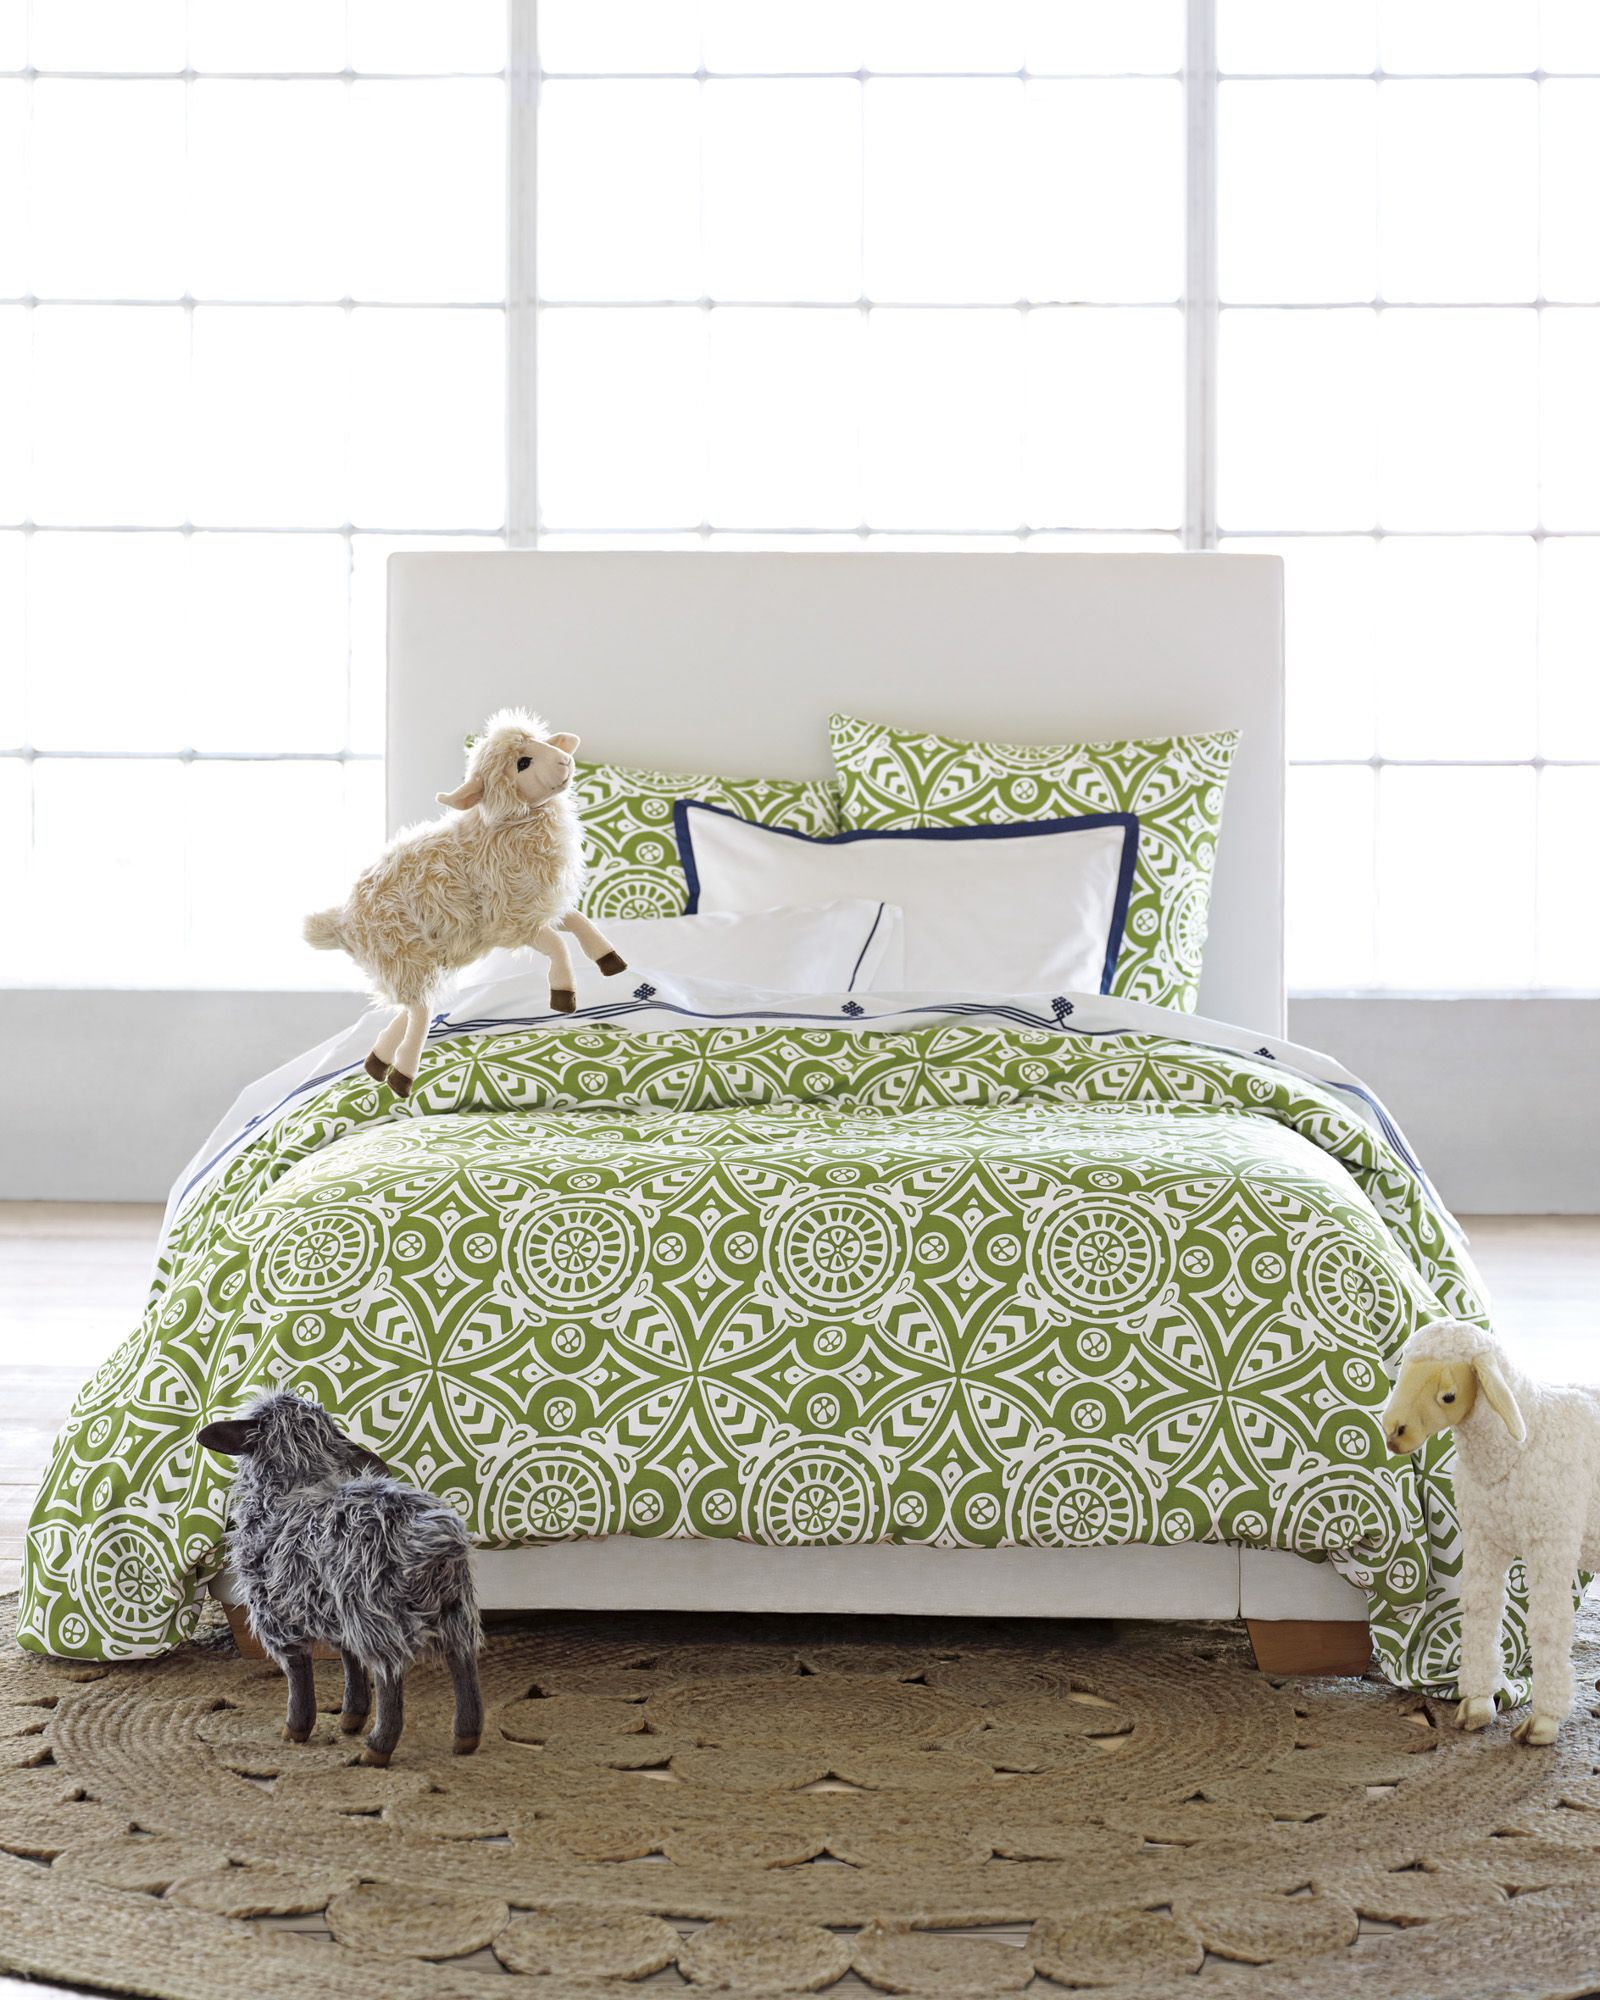 Discover Luxury Duvet Covers And Duvets From Serena U0026 Lily And Find The  Perfect Bedding For Your Master And Guest Bedrooms.